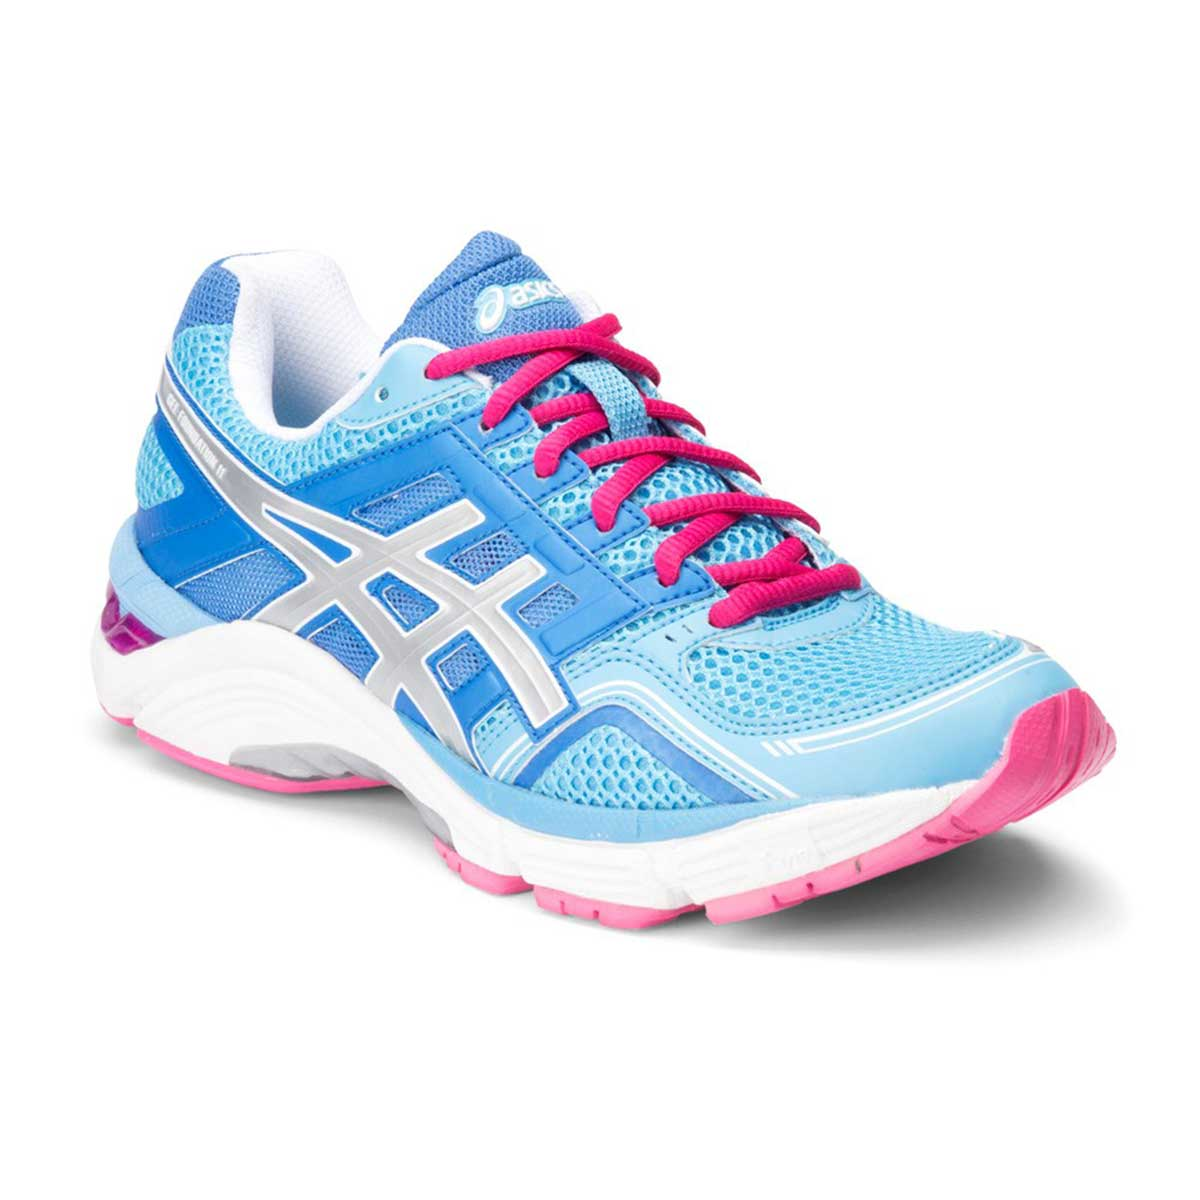 where to buy asics running shoes online